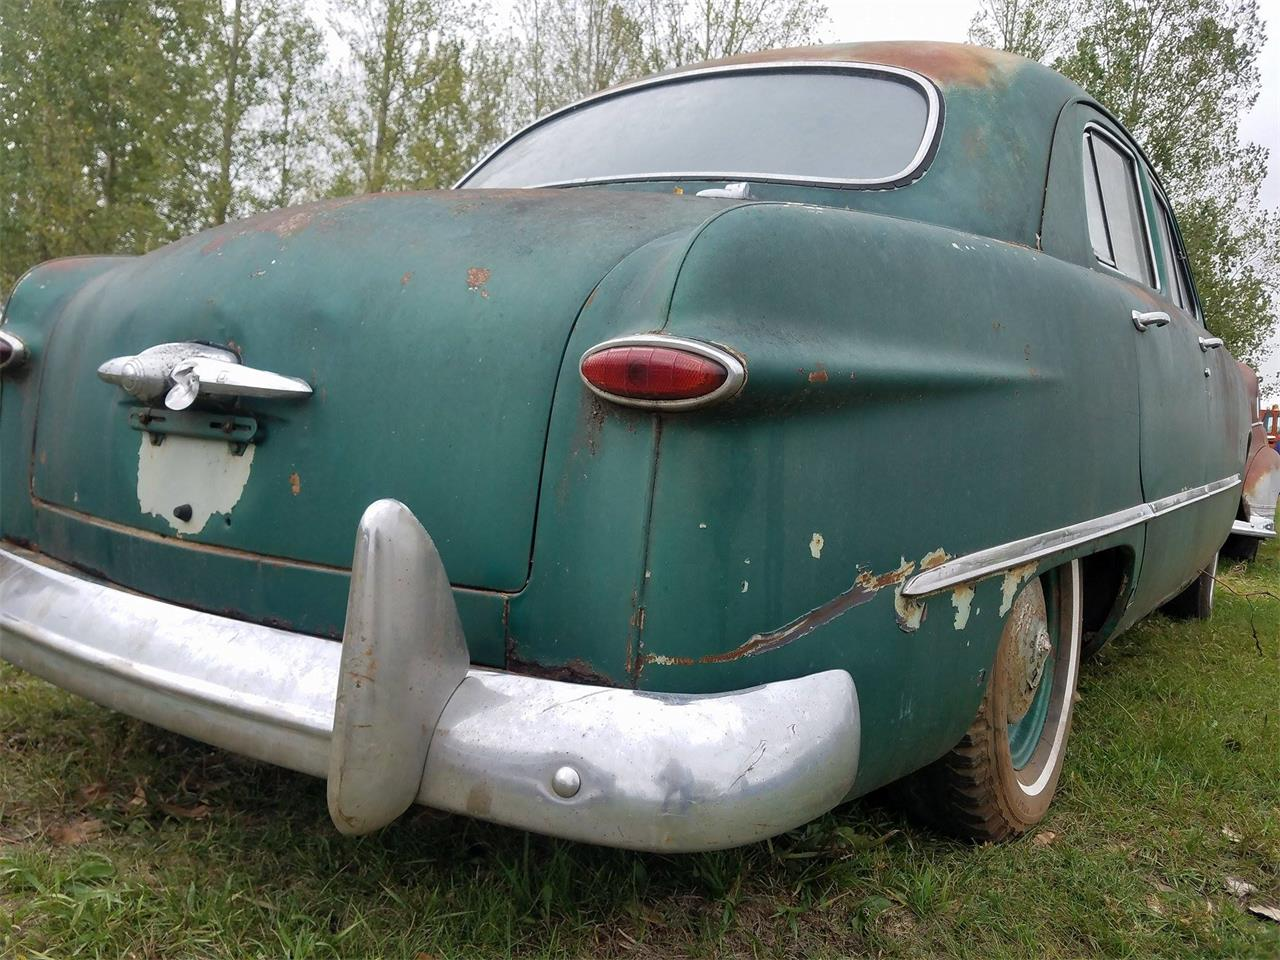 1949 Ford Sedan for sale in Thief River Falls, MN – photo 11